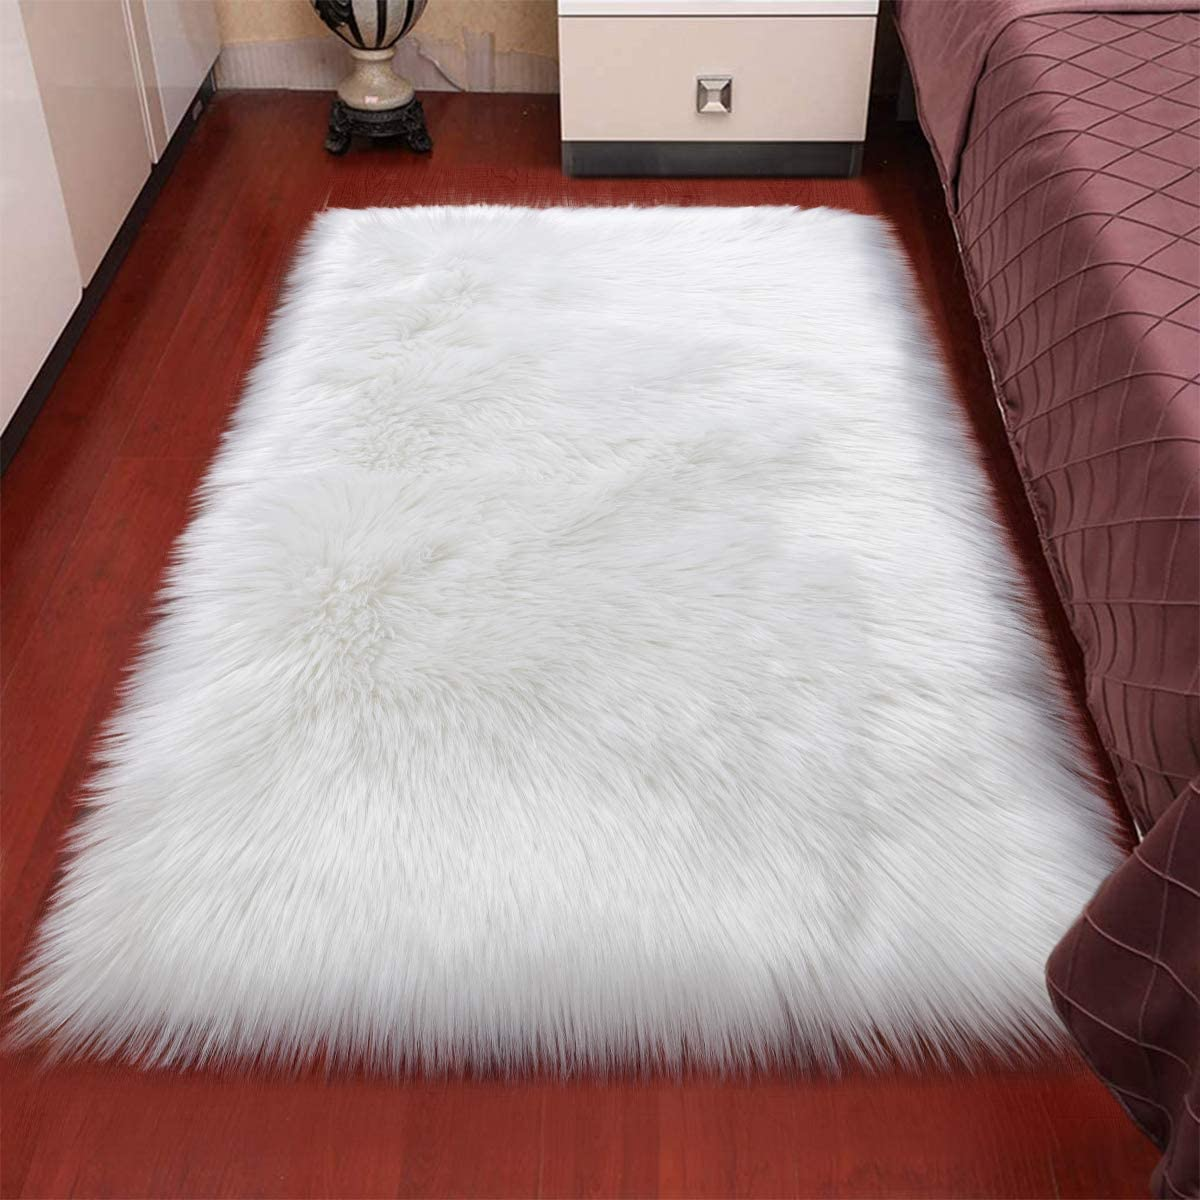 Rectangle Ultra Soft Fluffy Bedroom Rugs Luxury Faux Fur Sheepskin Area Rug, Plush Furry Shaggy Carpet for Living Room Floor Accent Fuzzy Nursery Bedside Girls Pricess Room Decor, 2x4 Feet, White